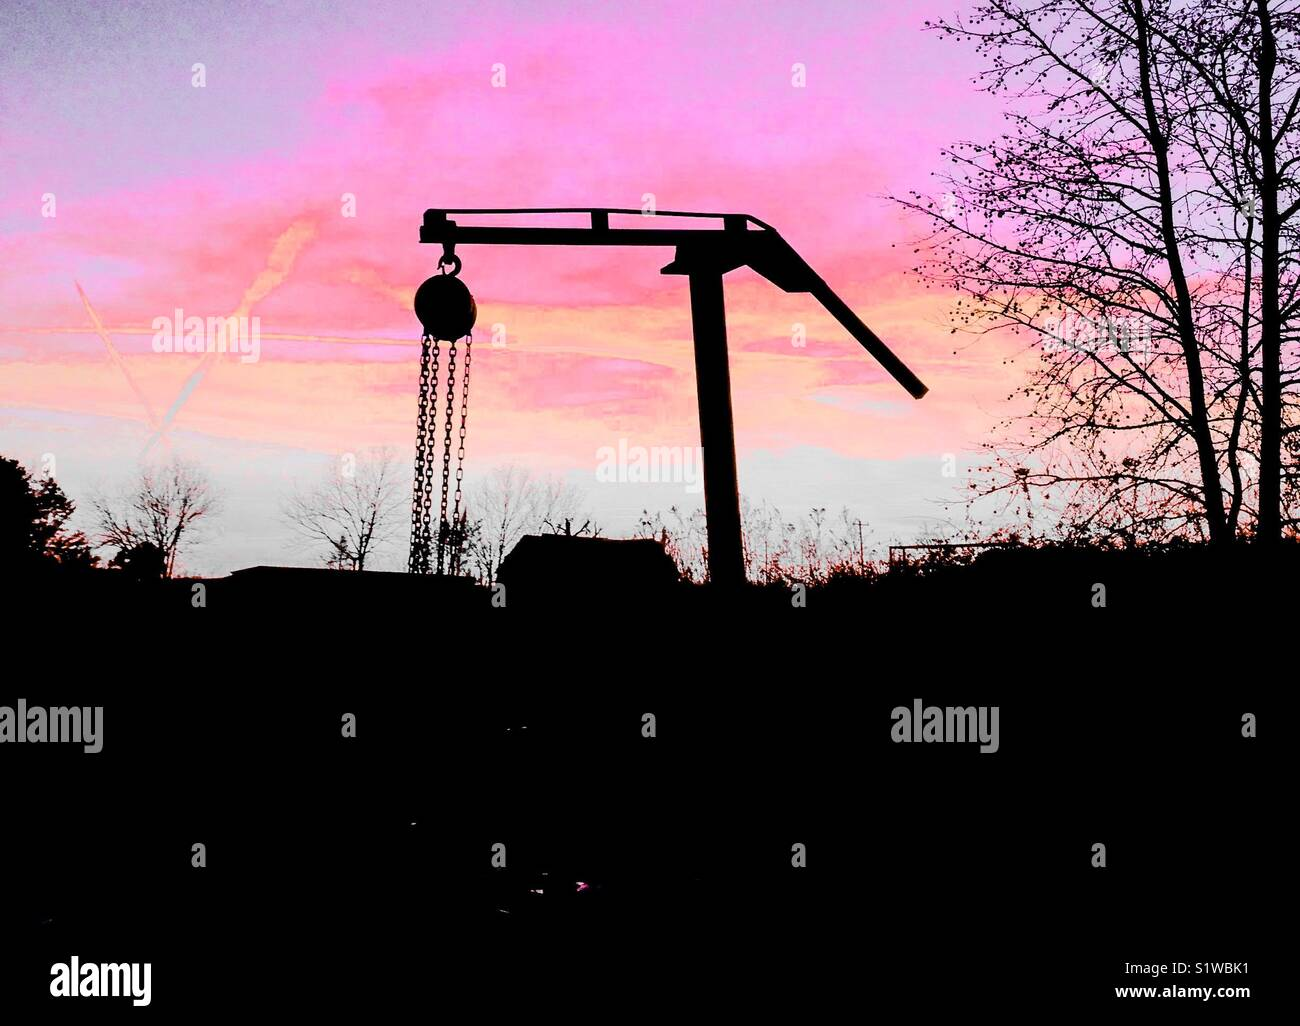 Pastel sunset with farm log lifter in silhouette - Stock Image